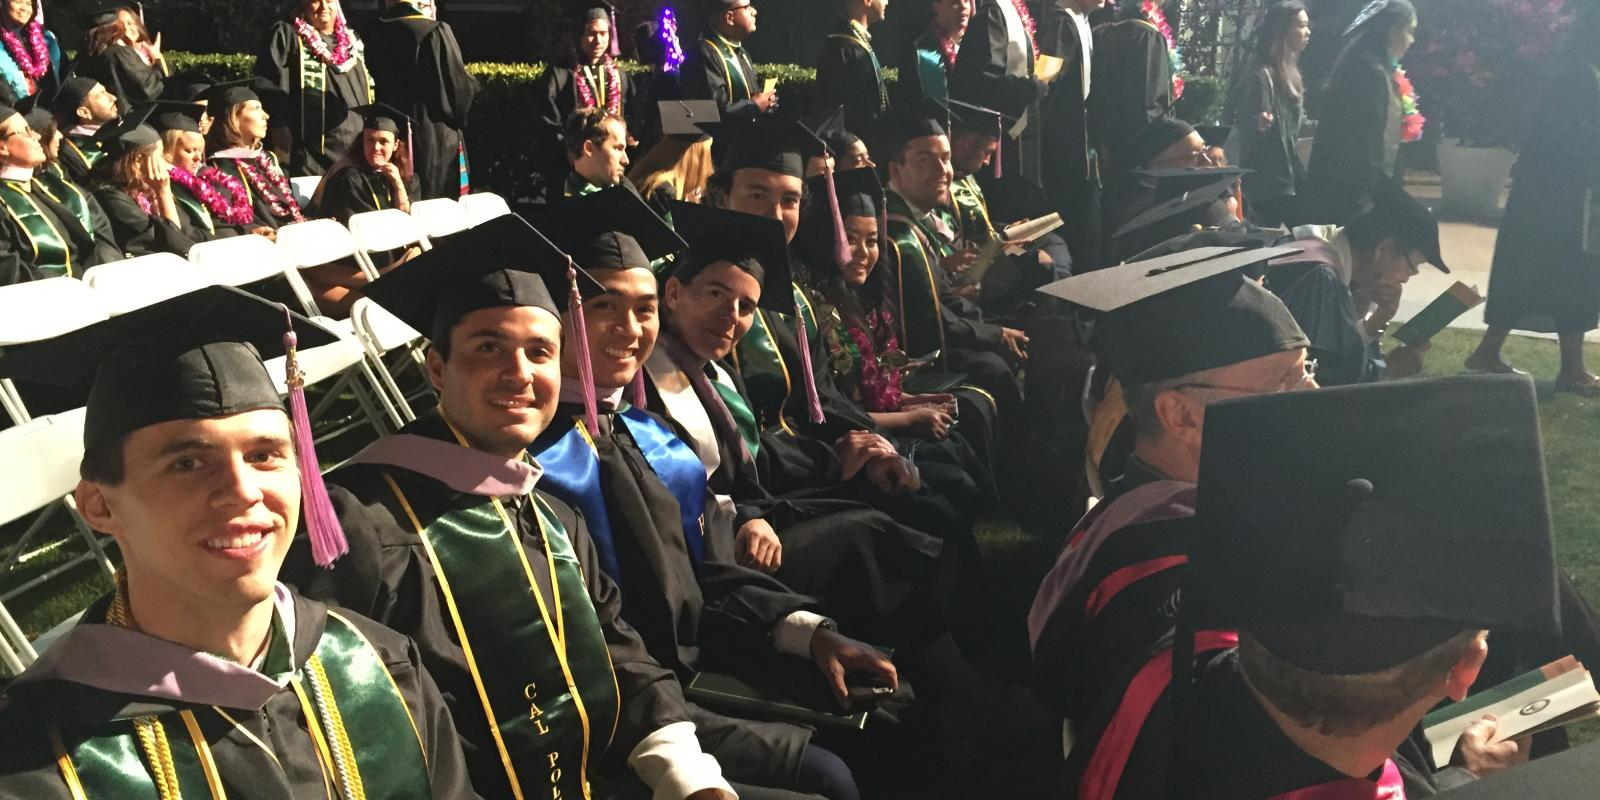 Architecture students in regalia at CPP commencement 2016